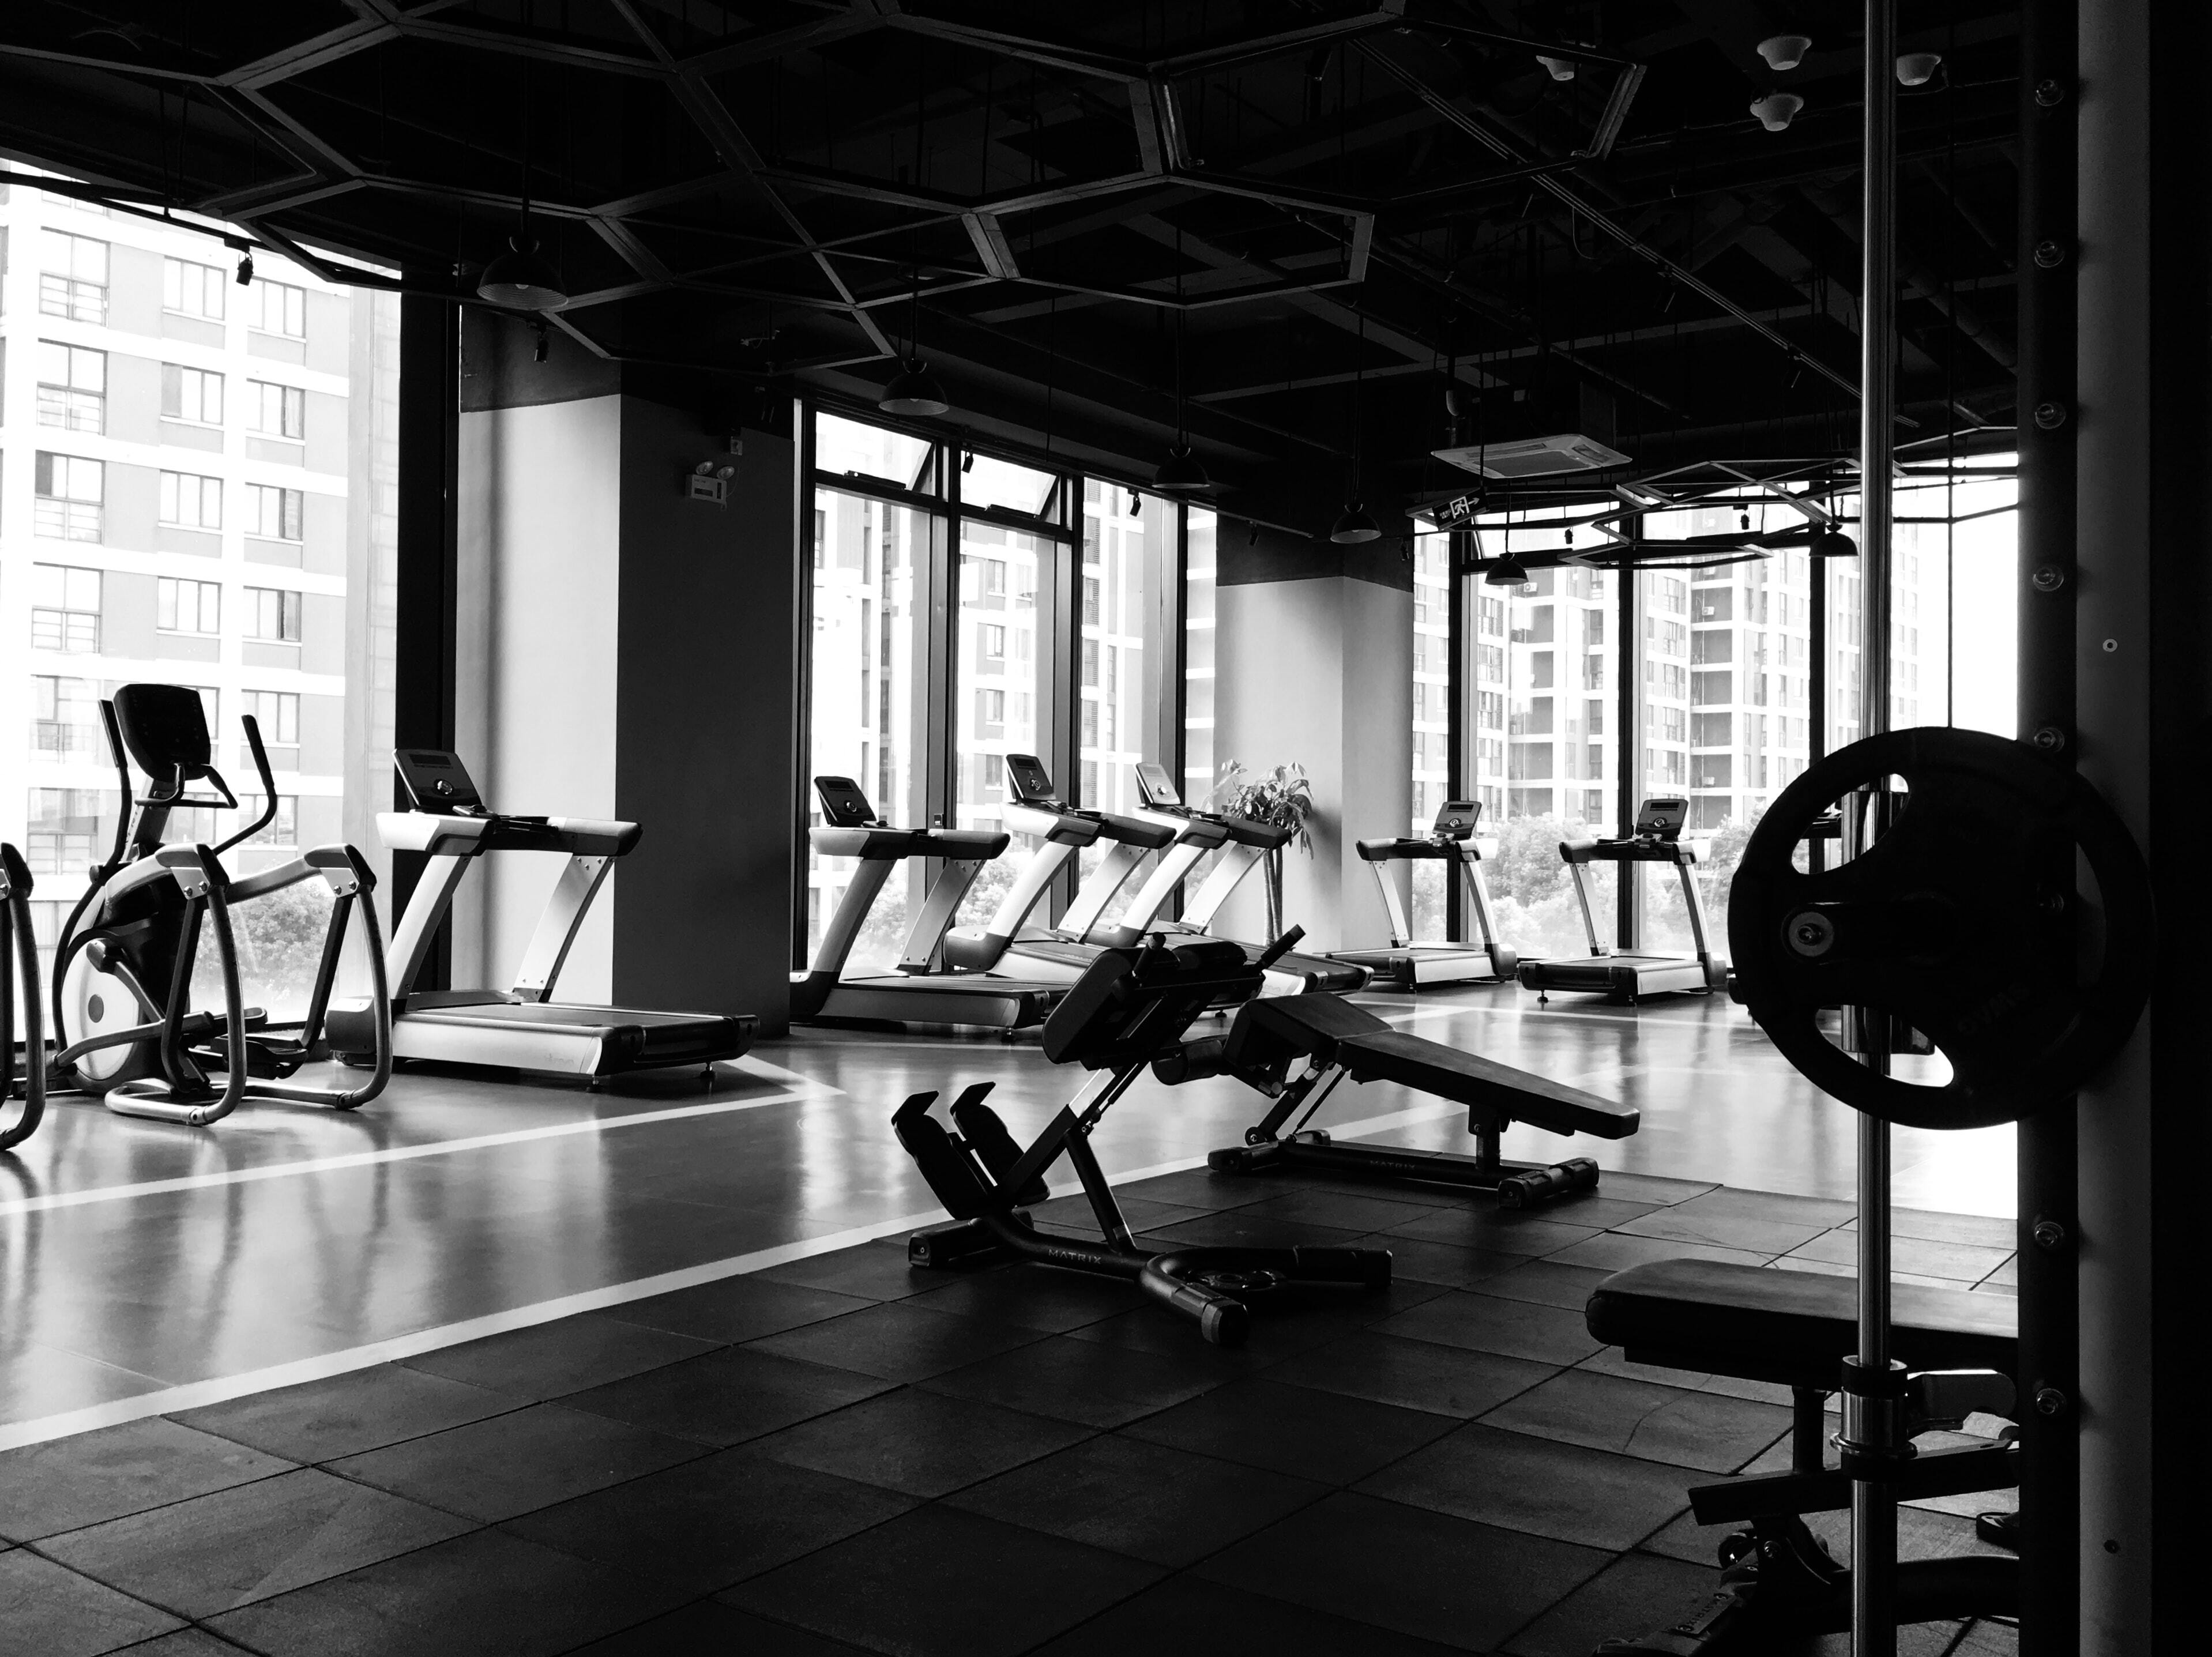 Black and White image of an empty gym